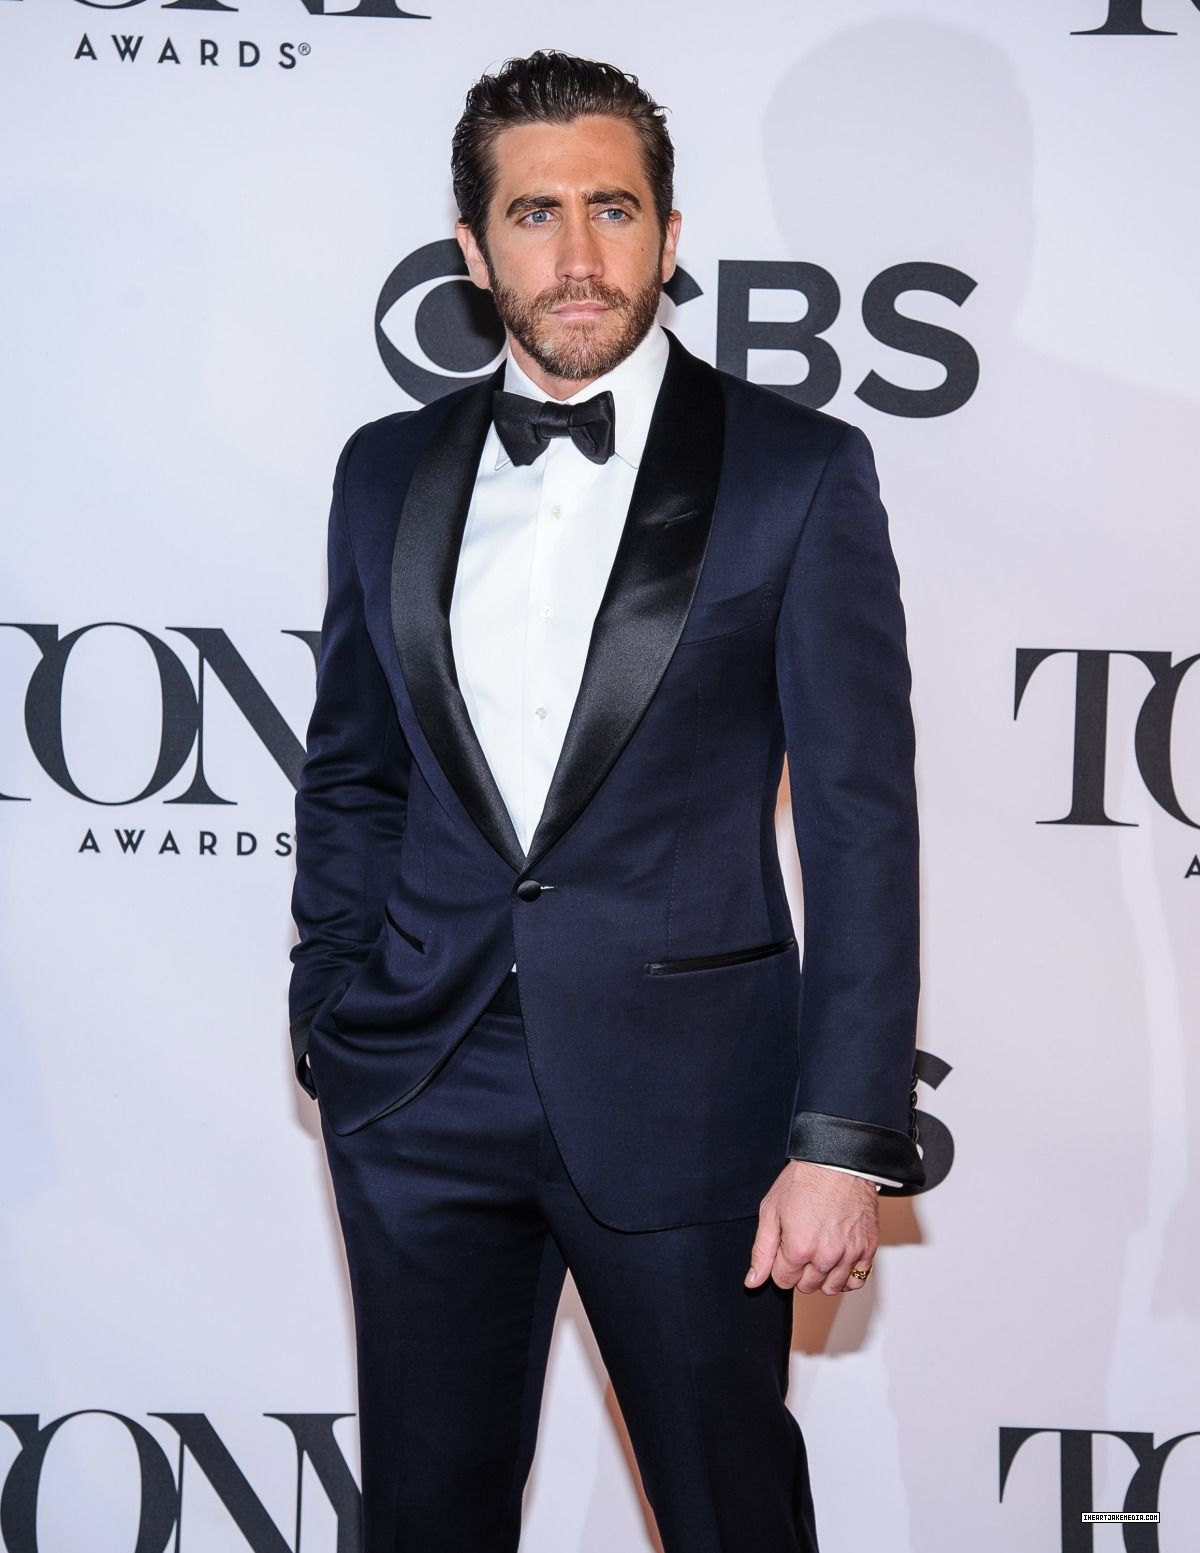 Fashion designer tom ford at the hollywood something or other awards - Midnight Blue Tuxedo By Tom Ford Seen In James Bond Skyfall